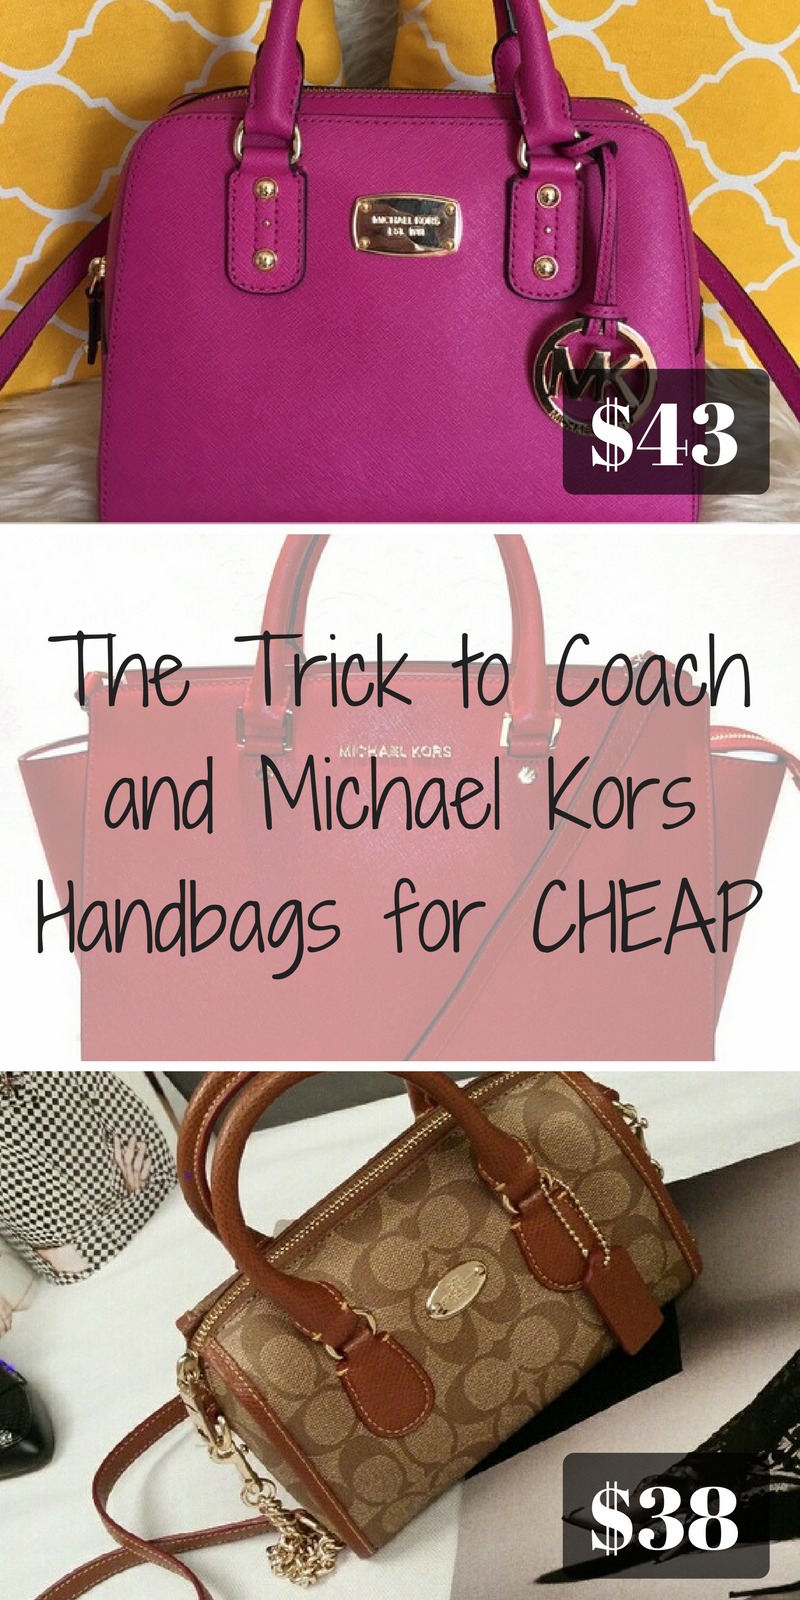 Buy and Sell Fall Handbags and Purses at Poshmark! Find new Michael Kors,  Coach, and more! Shipping is also fast and easy for sellers and buyers! d117beafe9